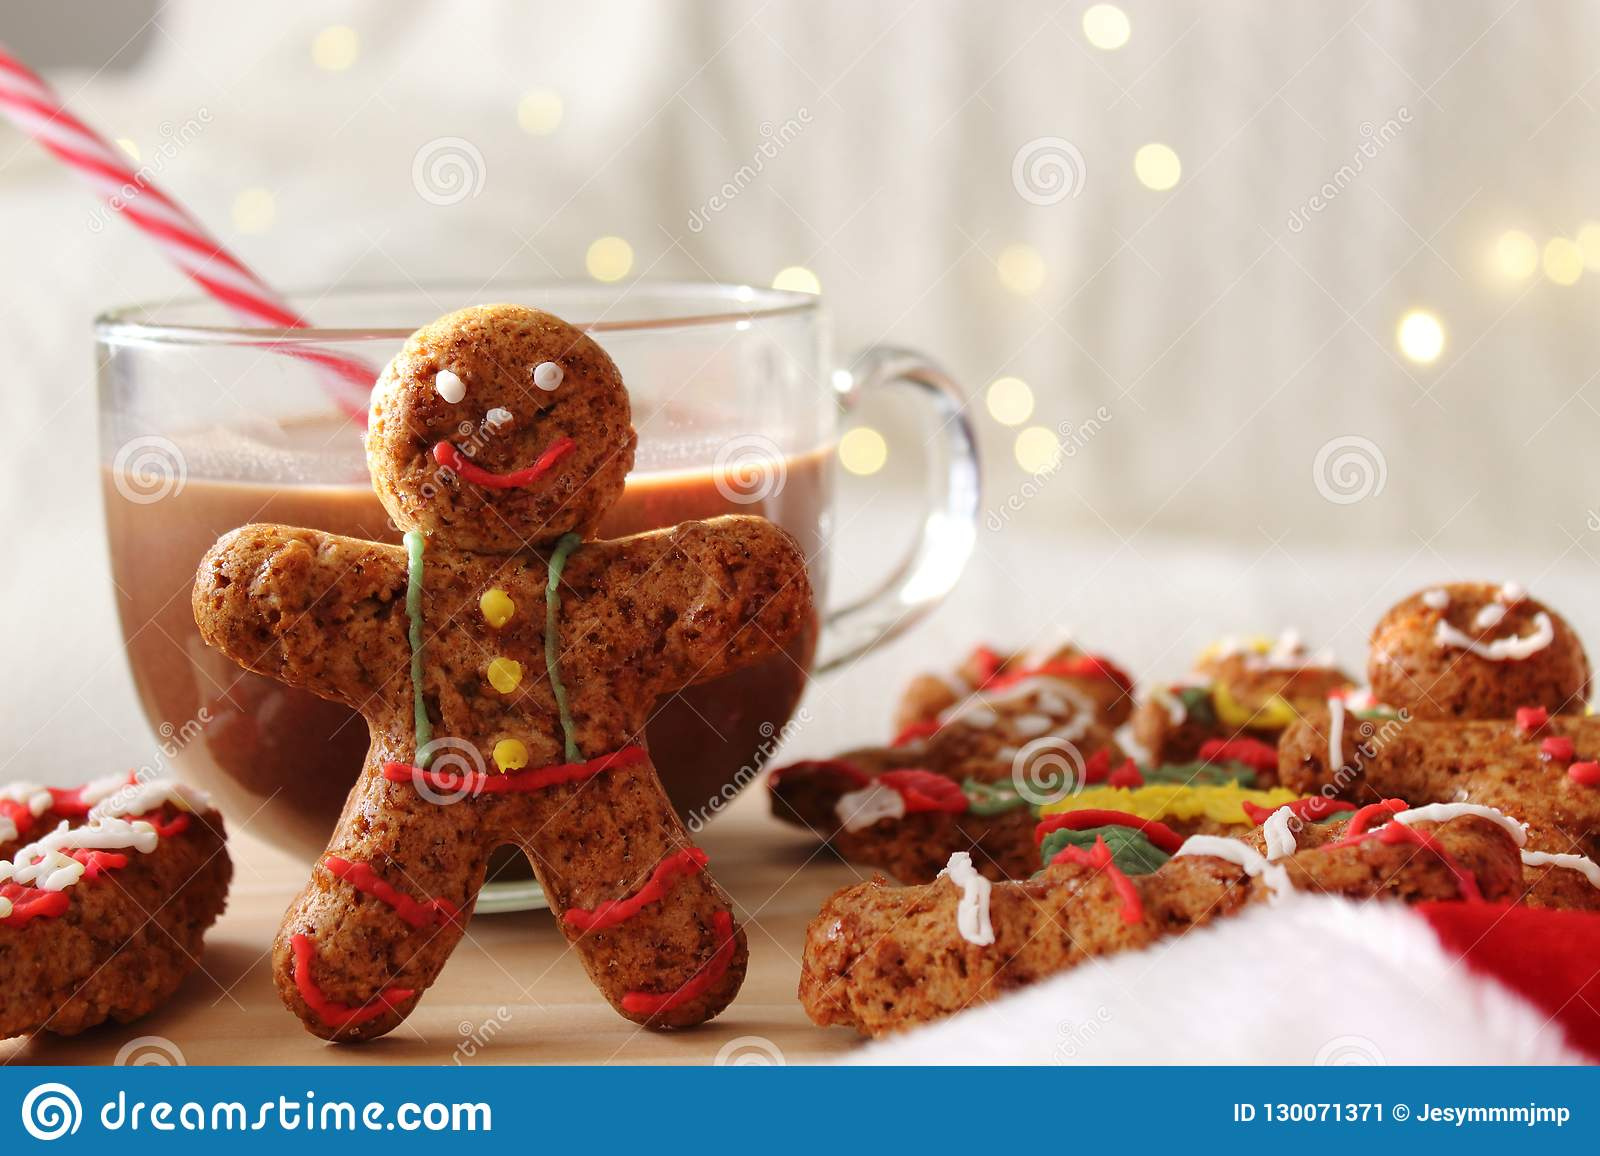 Smiling gingerbread man standing next to chocolate mug. Table of additional cookies.